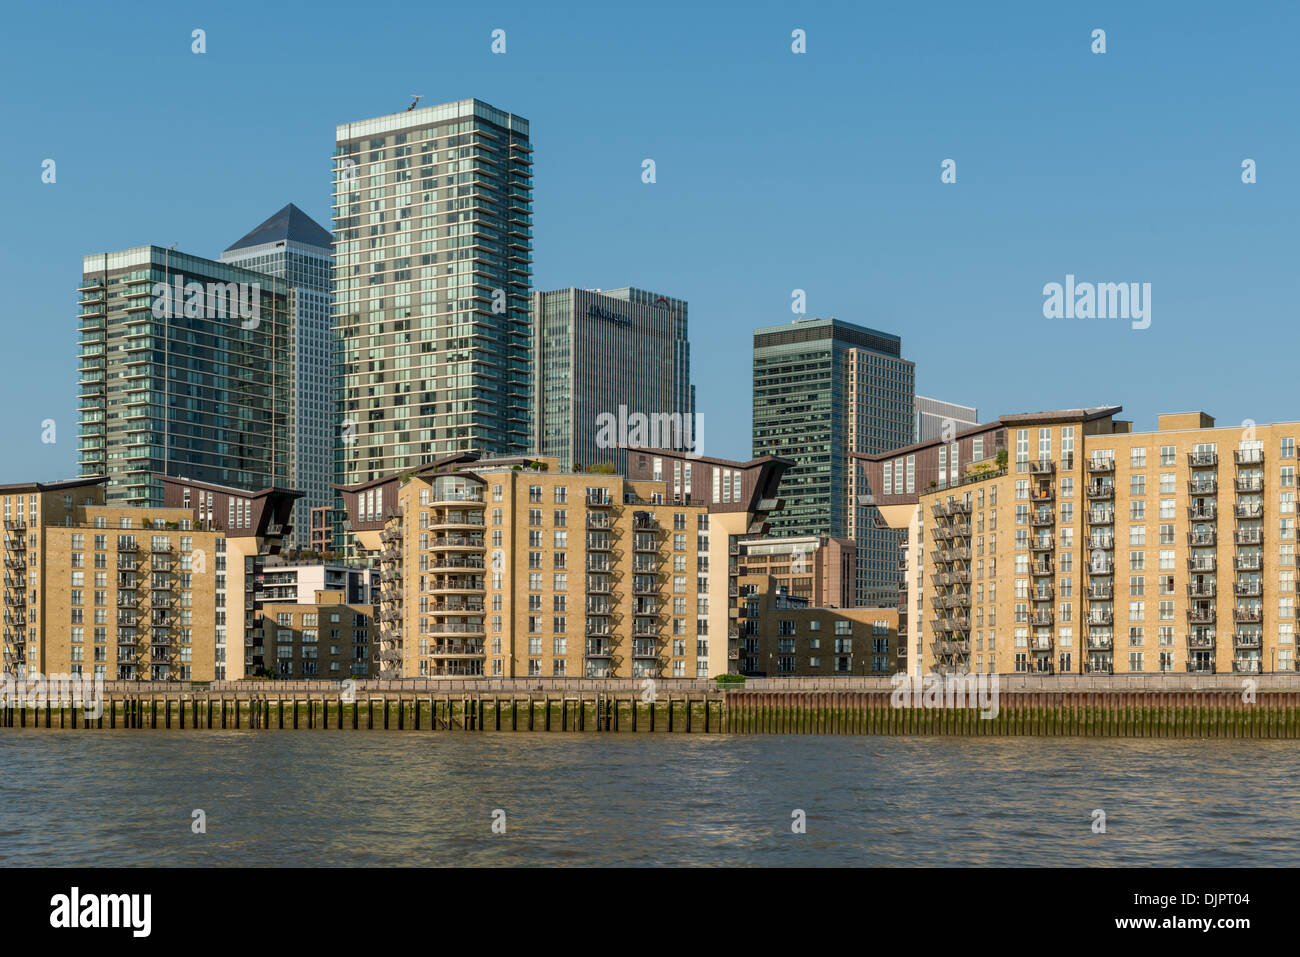 View of Canary Wharf and Isle of Dogs from River Thames - Stock Image